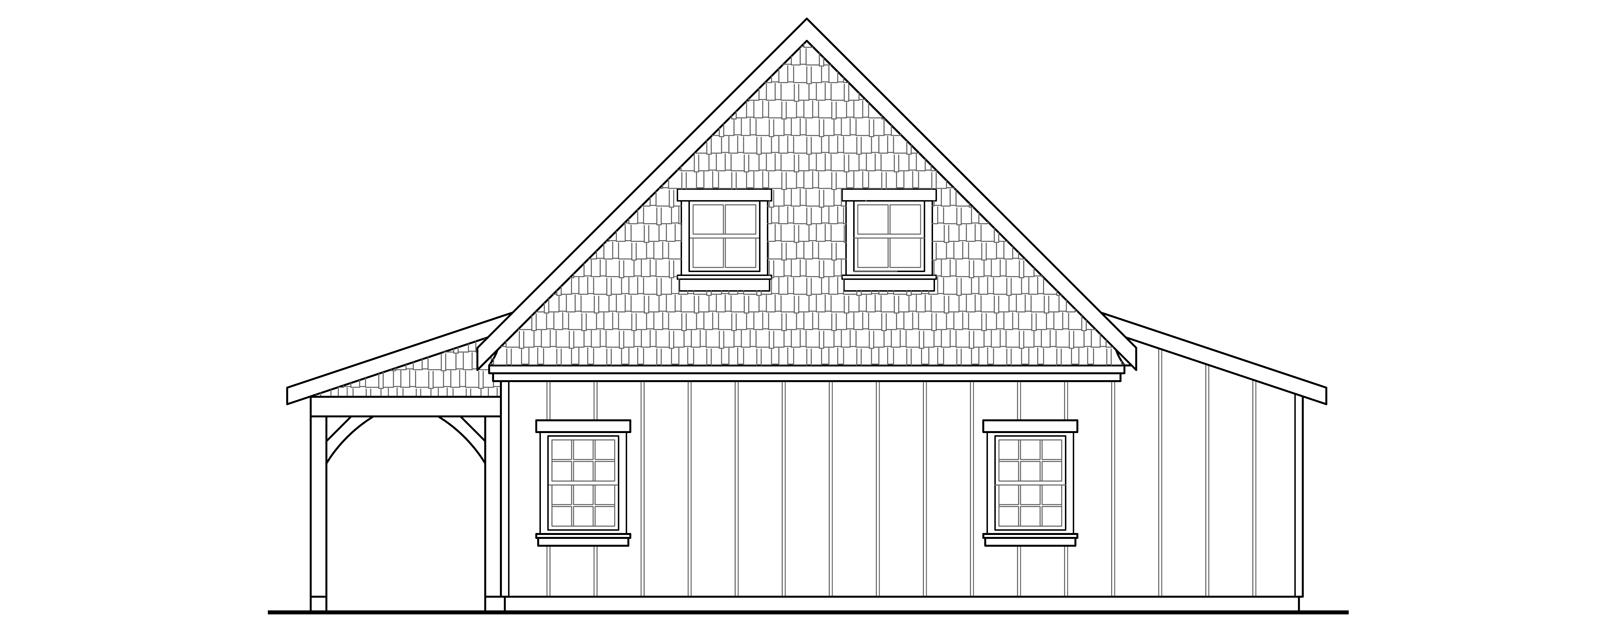 Plan w many windows facing the picturesque yard hills it for 30x36 garage plans